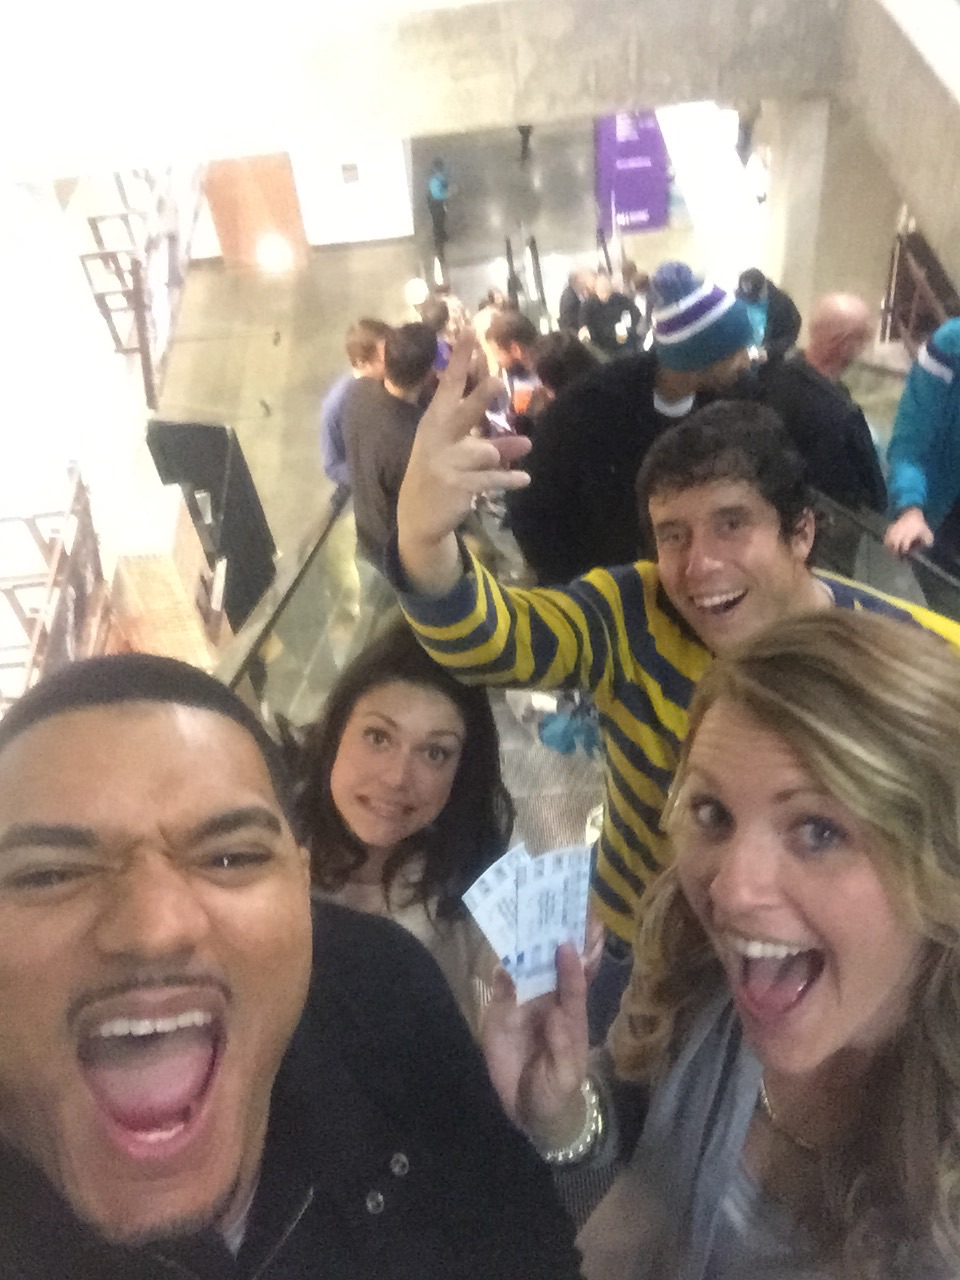 Eric, Alia, Sidney, and I  (obviously excited) in Time Warner Arena going to our seats.